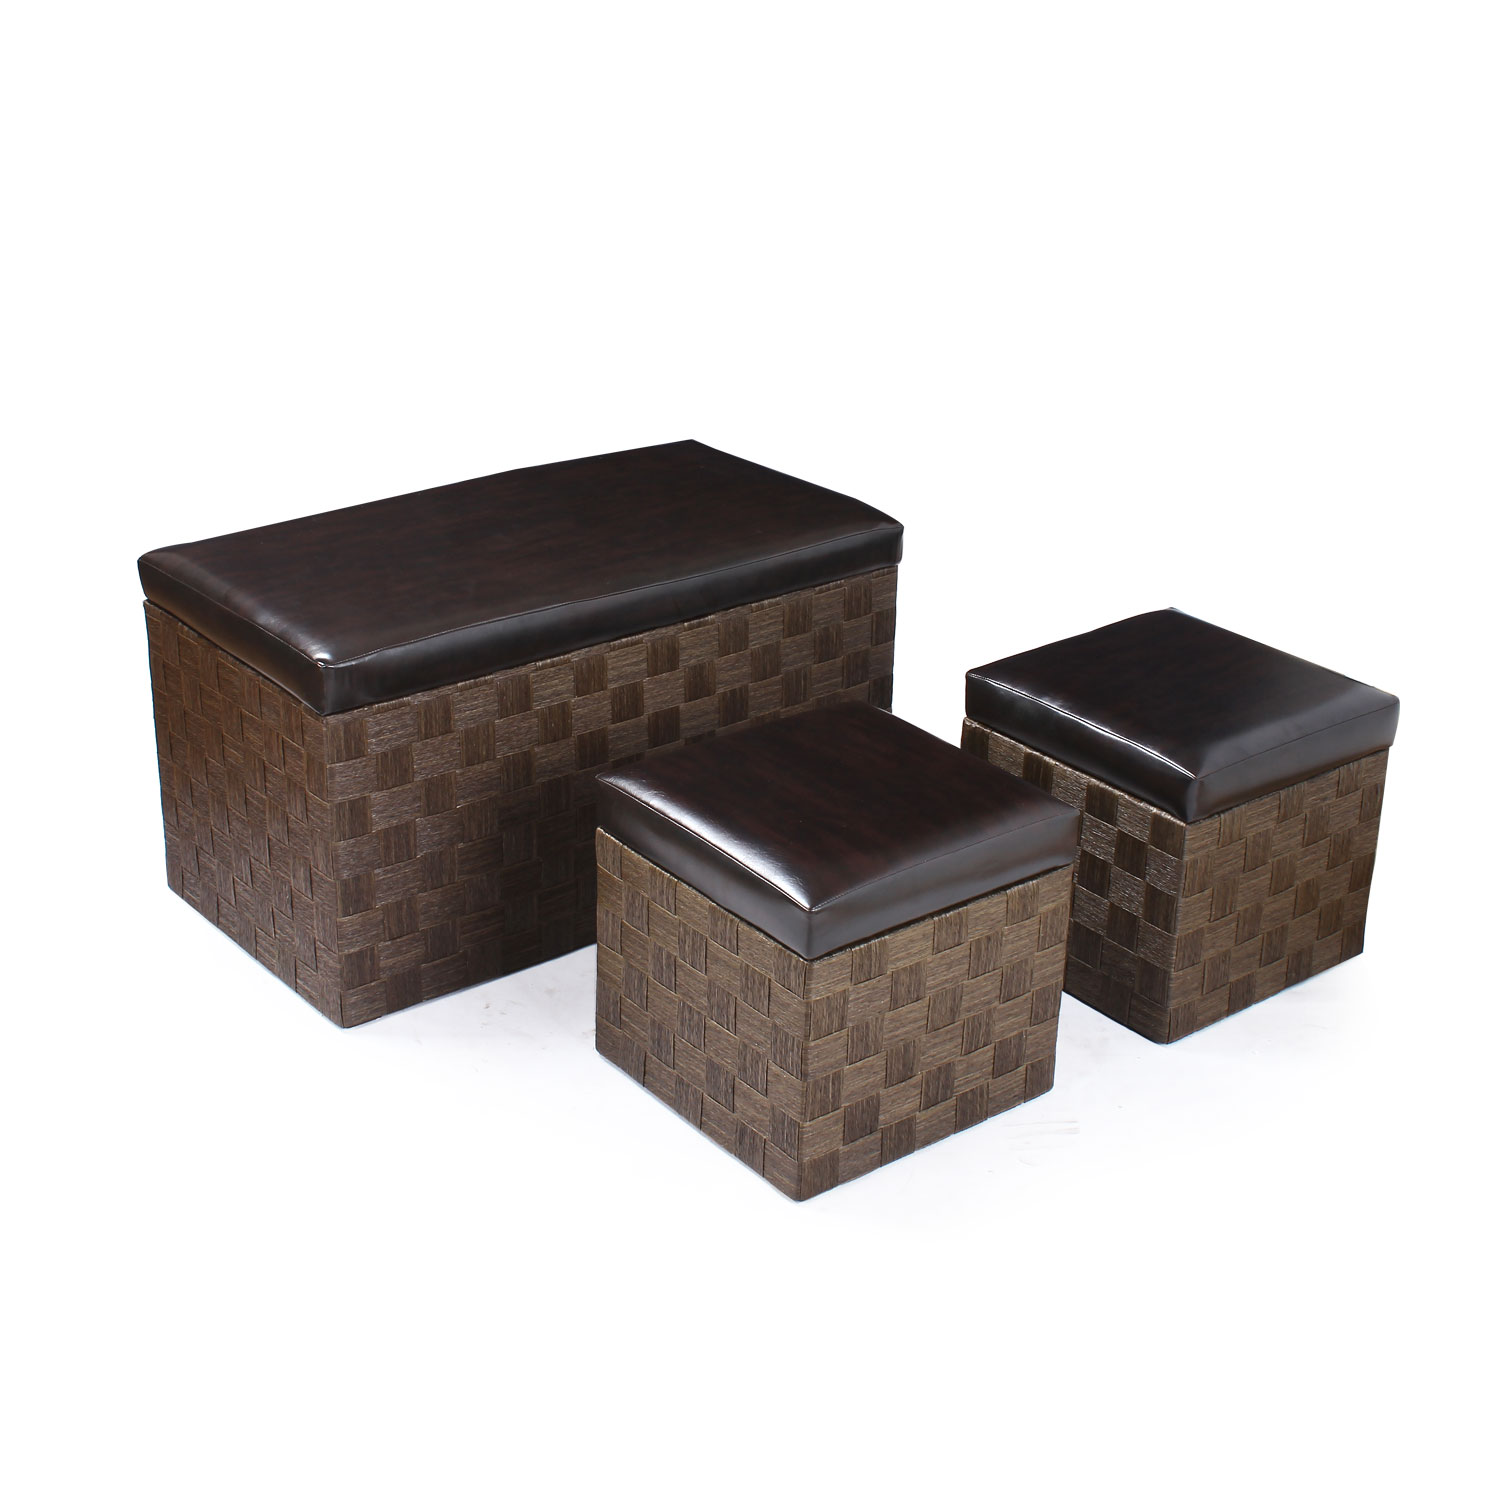 Charming Storage Ottoman / Bench With Weaved Woven Body U0026 Black Faux Leather Lid  (Set Of ...